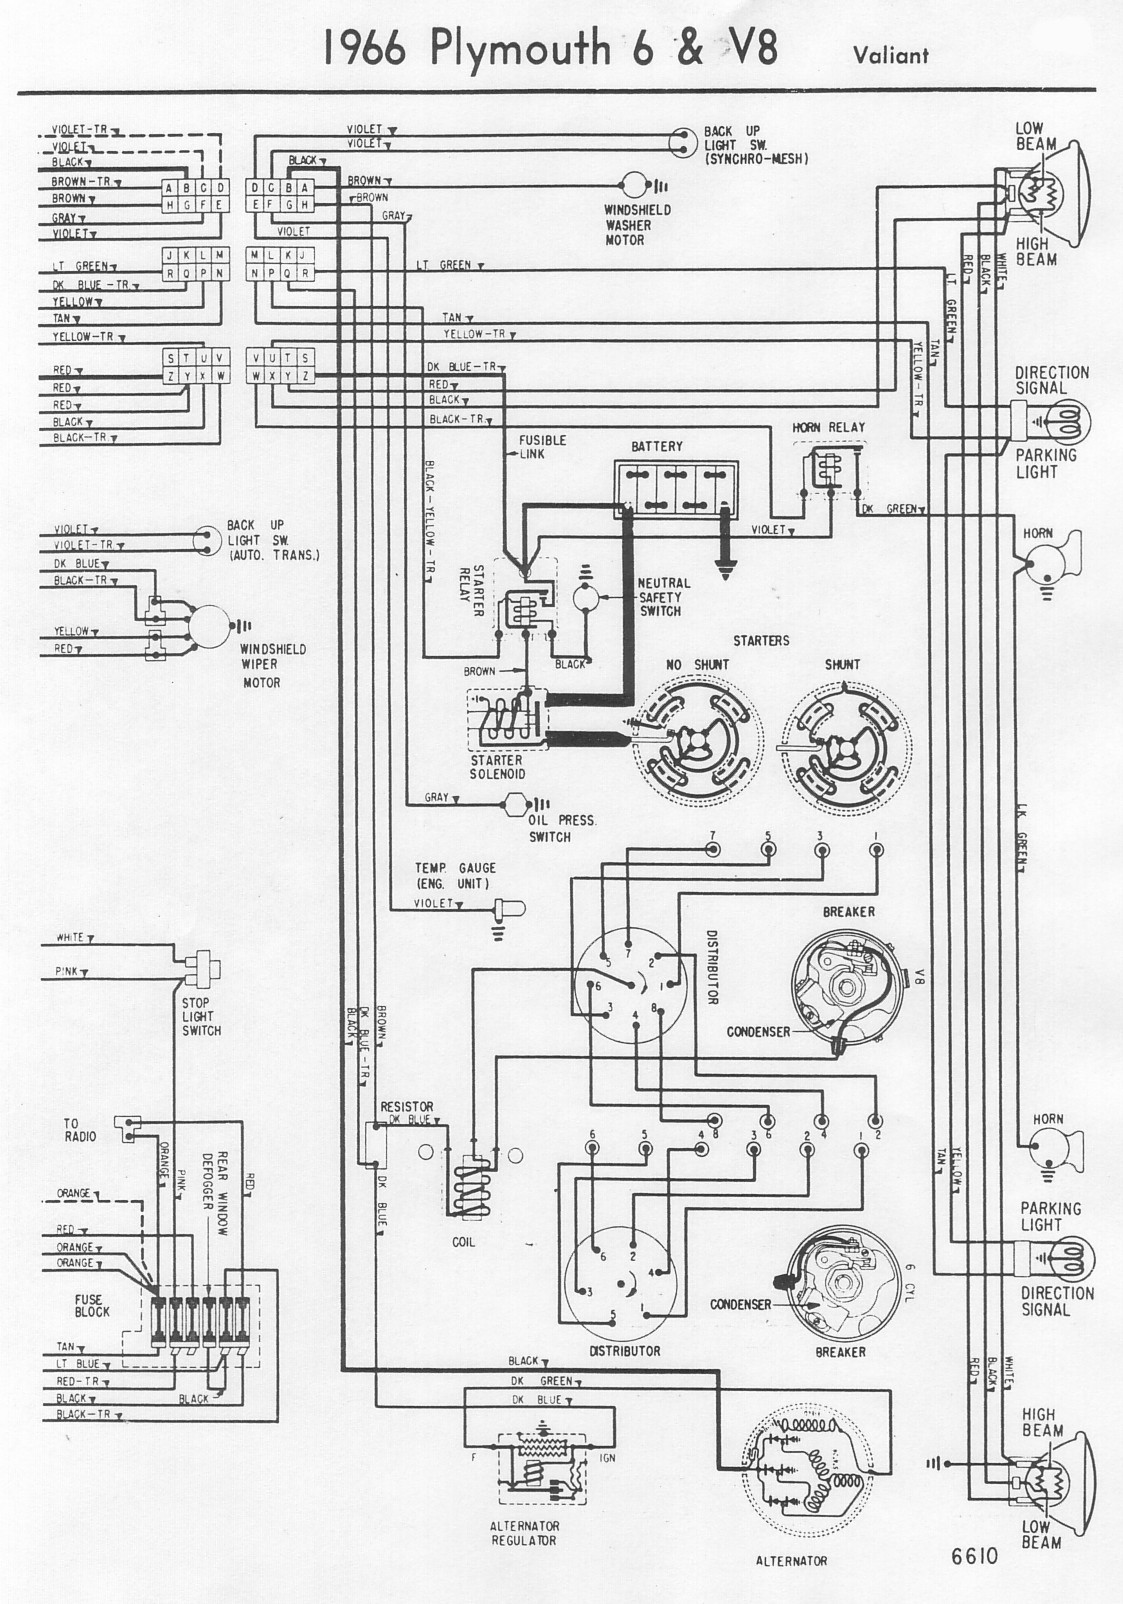 66ValiantB?quality\\=80\\&strip\\=all 1976 suzuki dr 250 wiring diagram suzuki gsx 750 wiring diagram suzuki ozark 250 wiring diagram at eliteediting.co